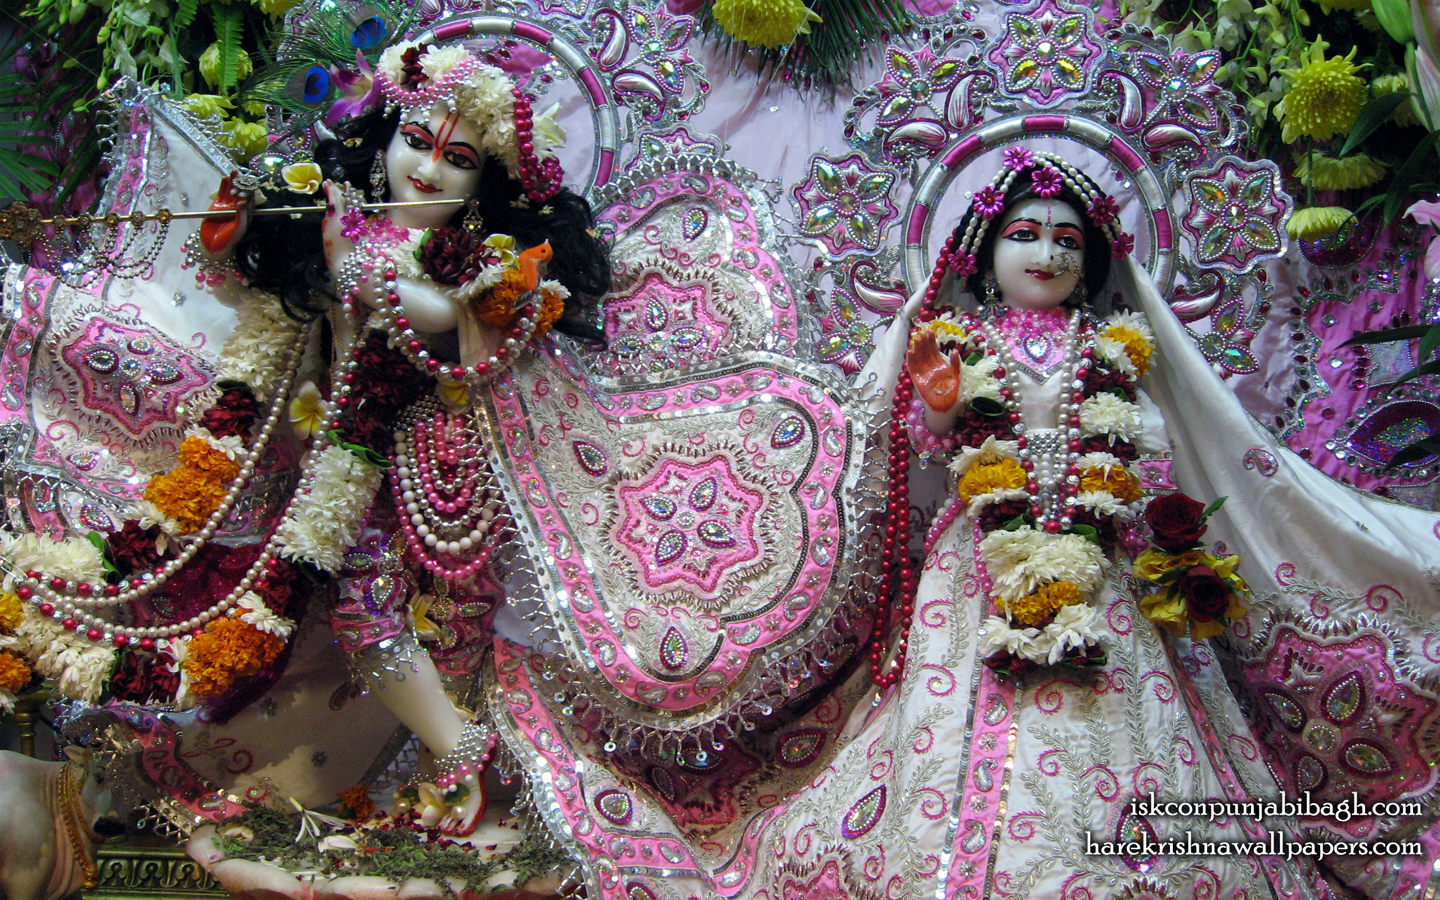 Sri Sri Radha Radhikaraman Wallpaper (002) Size 1440x900 Download